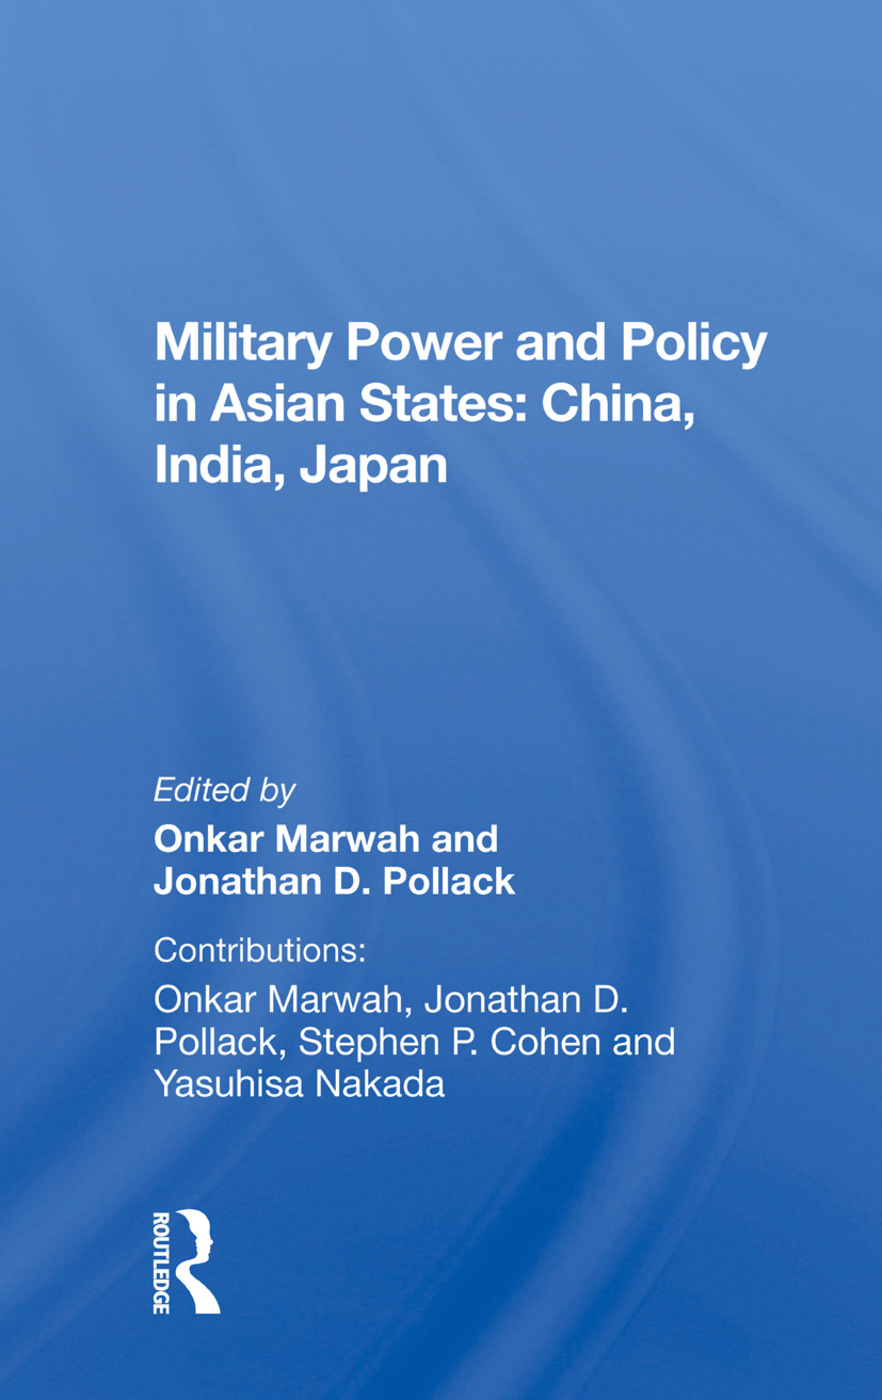 Military Power and Policy in Asian States: China, India, Japan